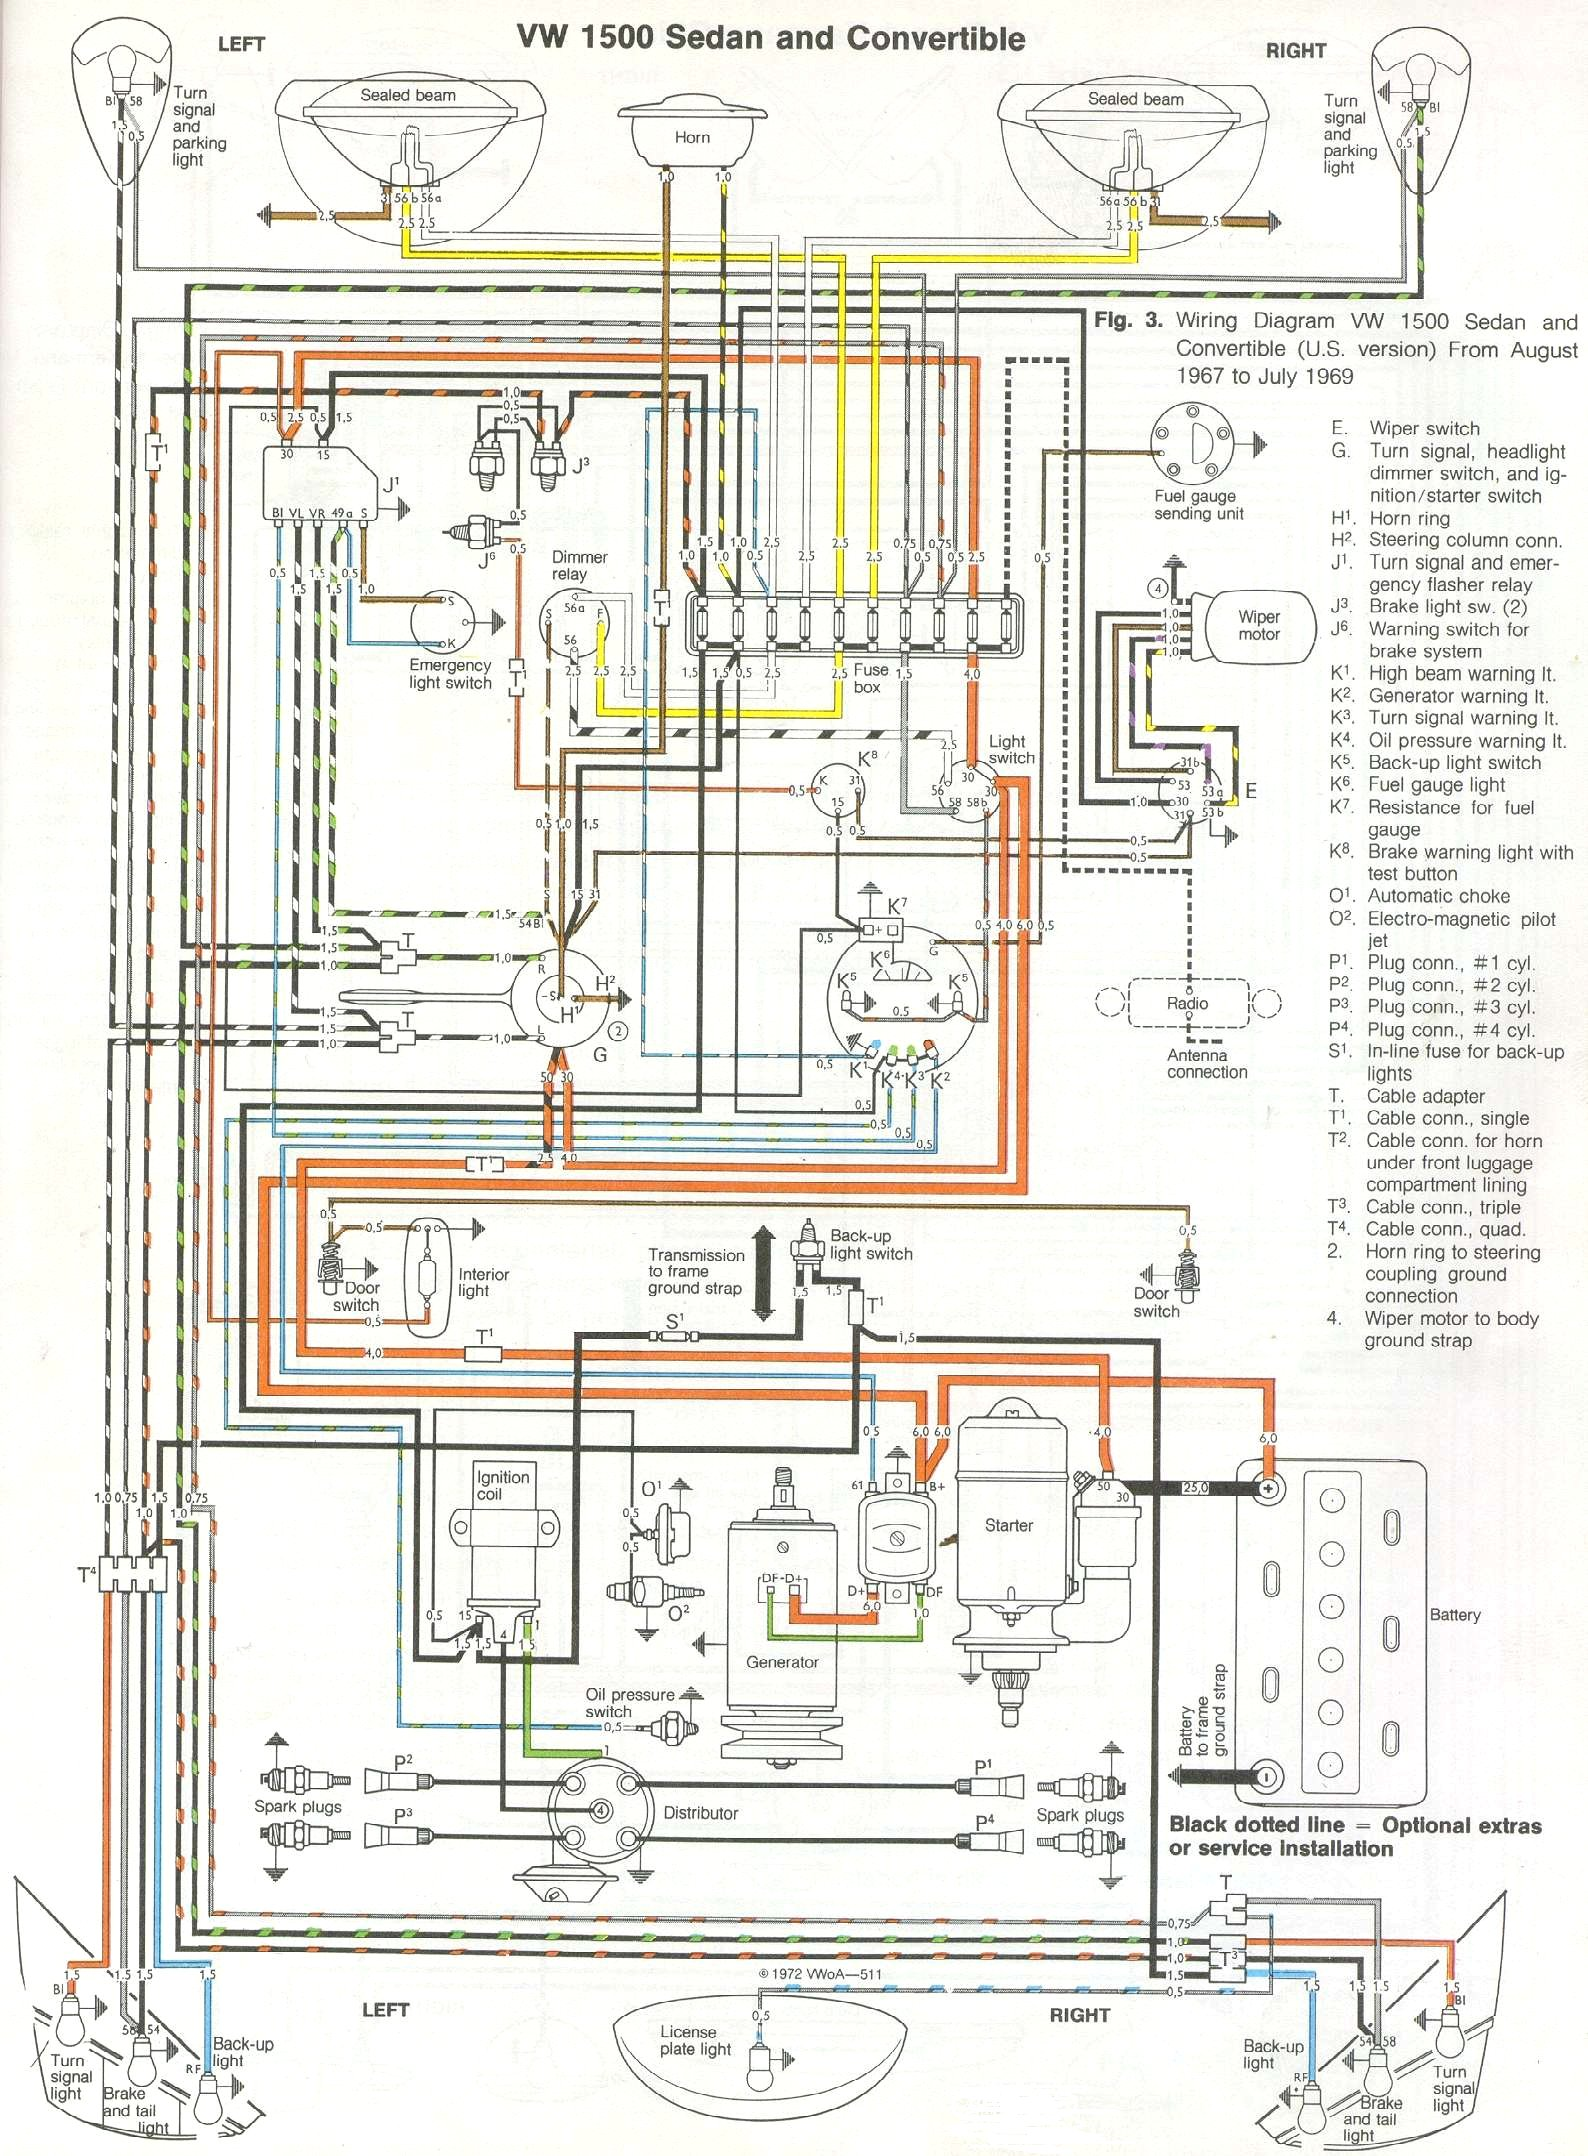 1972 Vw Bug Wiring - 2.xeghaqqt.chrisblacksbio.info •  Vw Bug Wiring Harness on vw bug ignition system, vw bug electrical, vw bug flasher relay, vw bug solenoid, vw bug speaker, vw bug throttle cable, vw bug thermostat, vw beetle wiring, vw bug intercooler, vw bug wiring kit, vw bug oil temp sensor, vw bug lights, vw wiring harness kits, vw bug exhaust gasket, vw bug steering coupler, vw bug serpentine belt, vw bug spark plugs, vw bug intake, vw trike wiring harness, vw bug charging system,